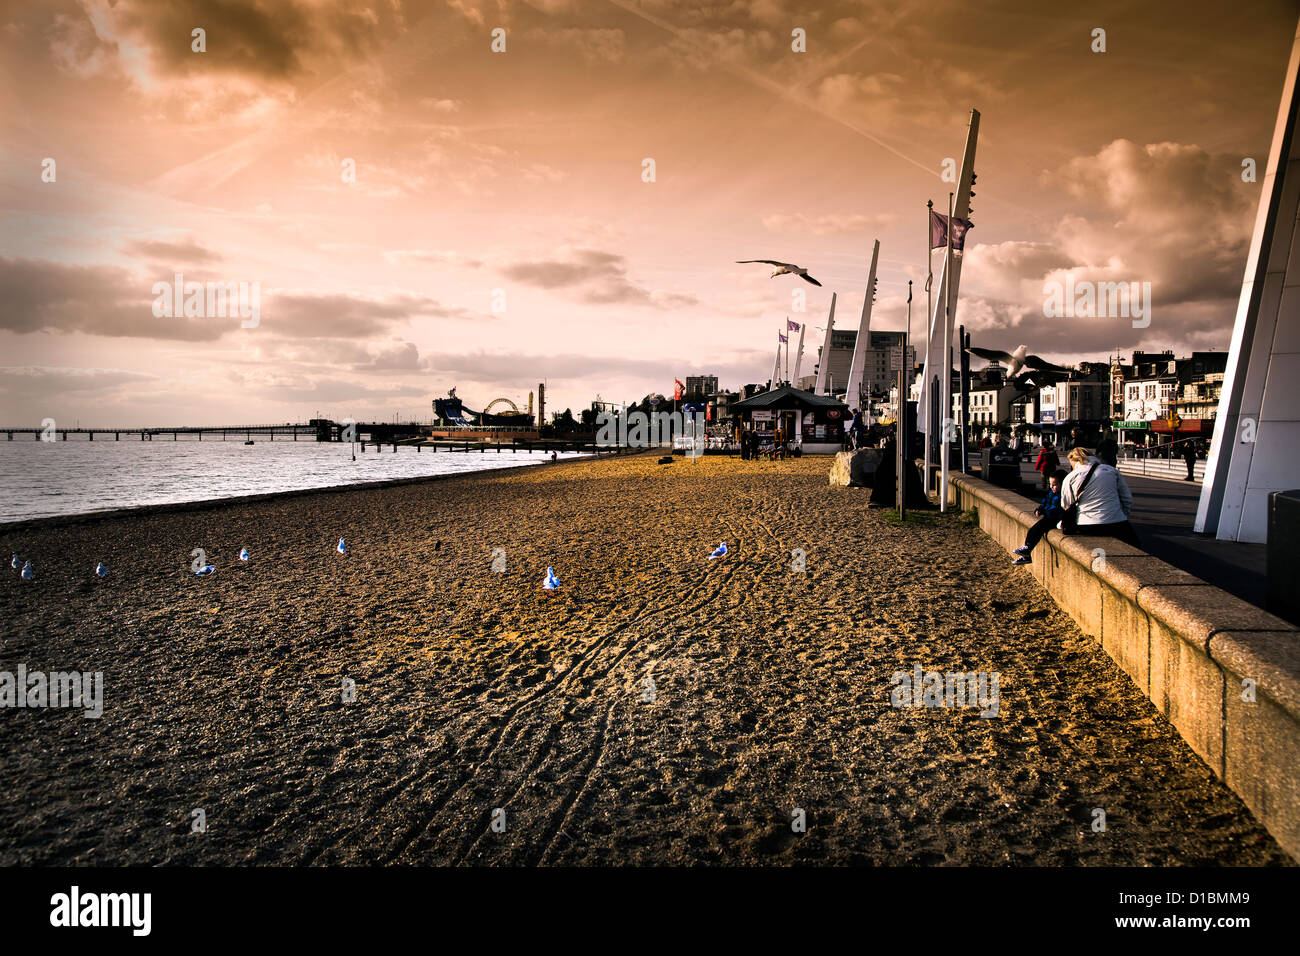 southend on sea seafront - Stock Image